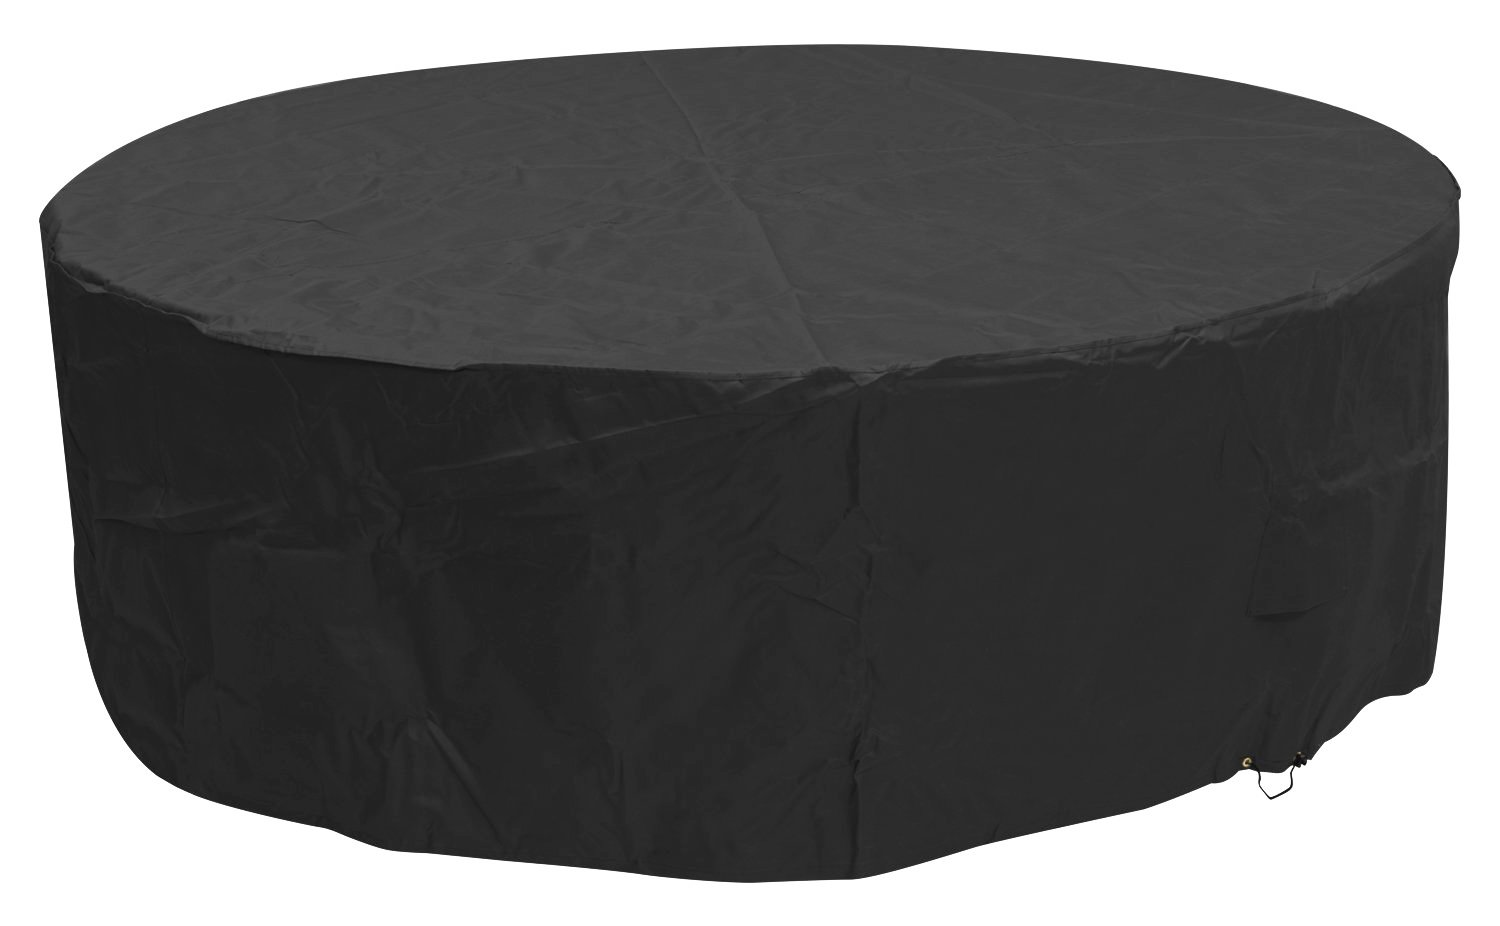 Woodside Black 6-8 Seater Round Outdoor Garden Patio Furniture Set Cover 0.8m x 2.52m / 2.6ft x 8.3ft 5 YEAR GUARANTEE